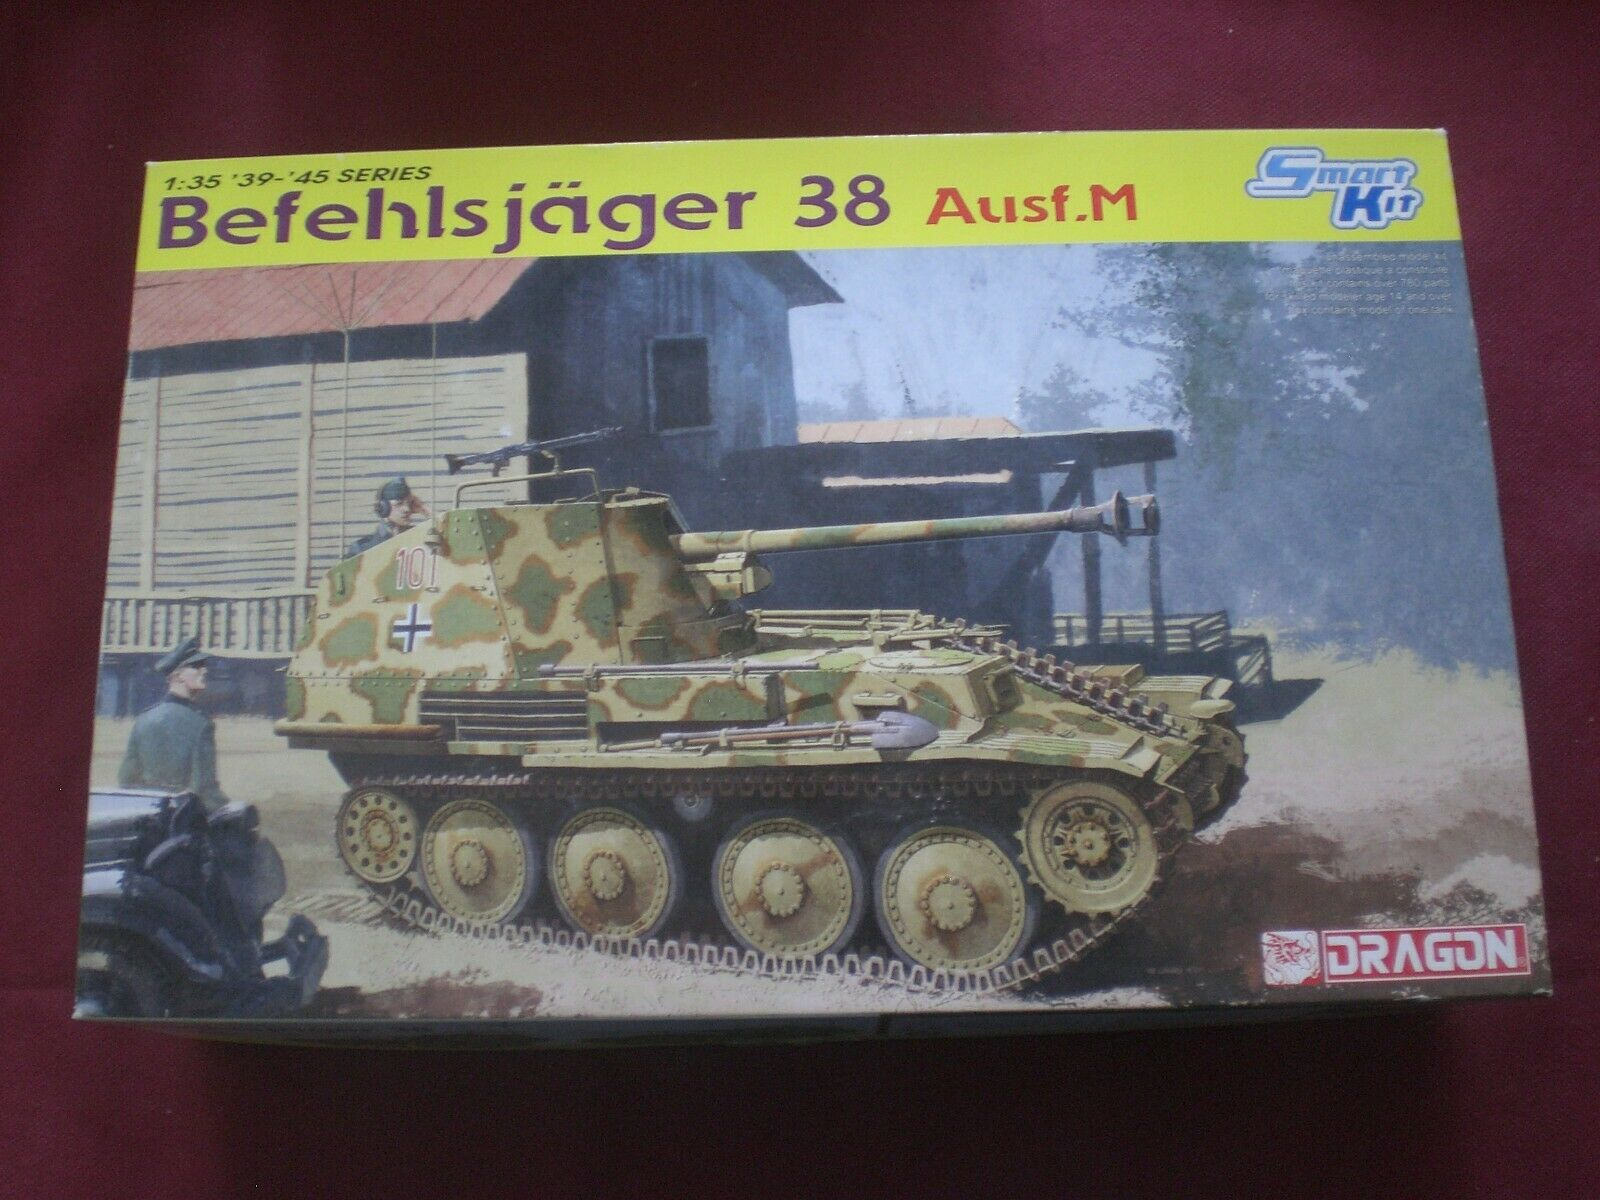 Befehlsjager 38 Ausf.M - SCALA 1 35 Dragon